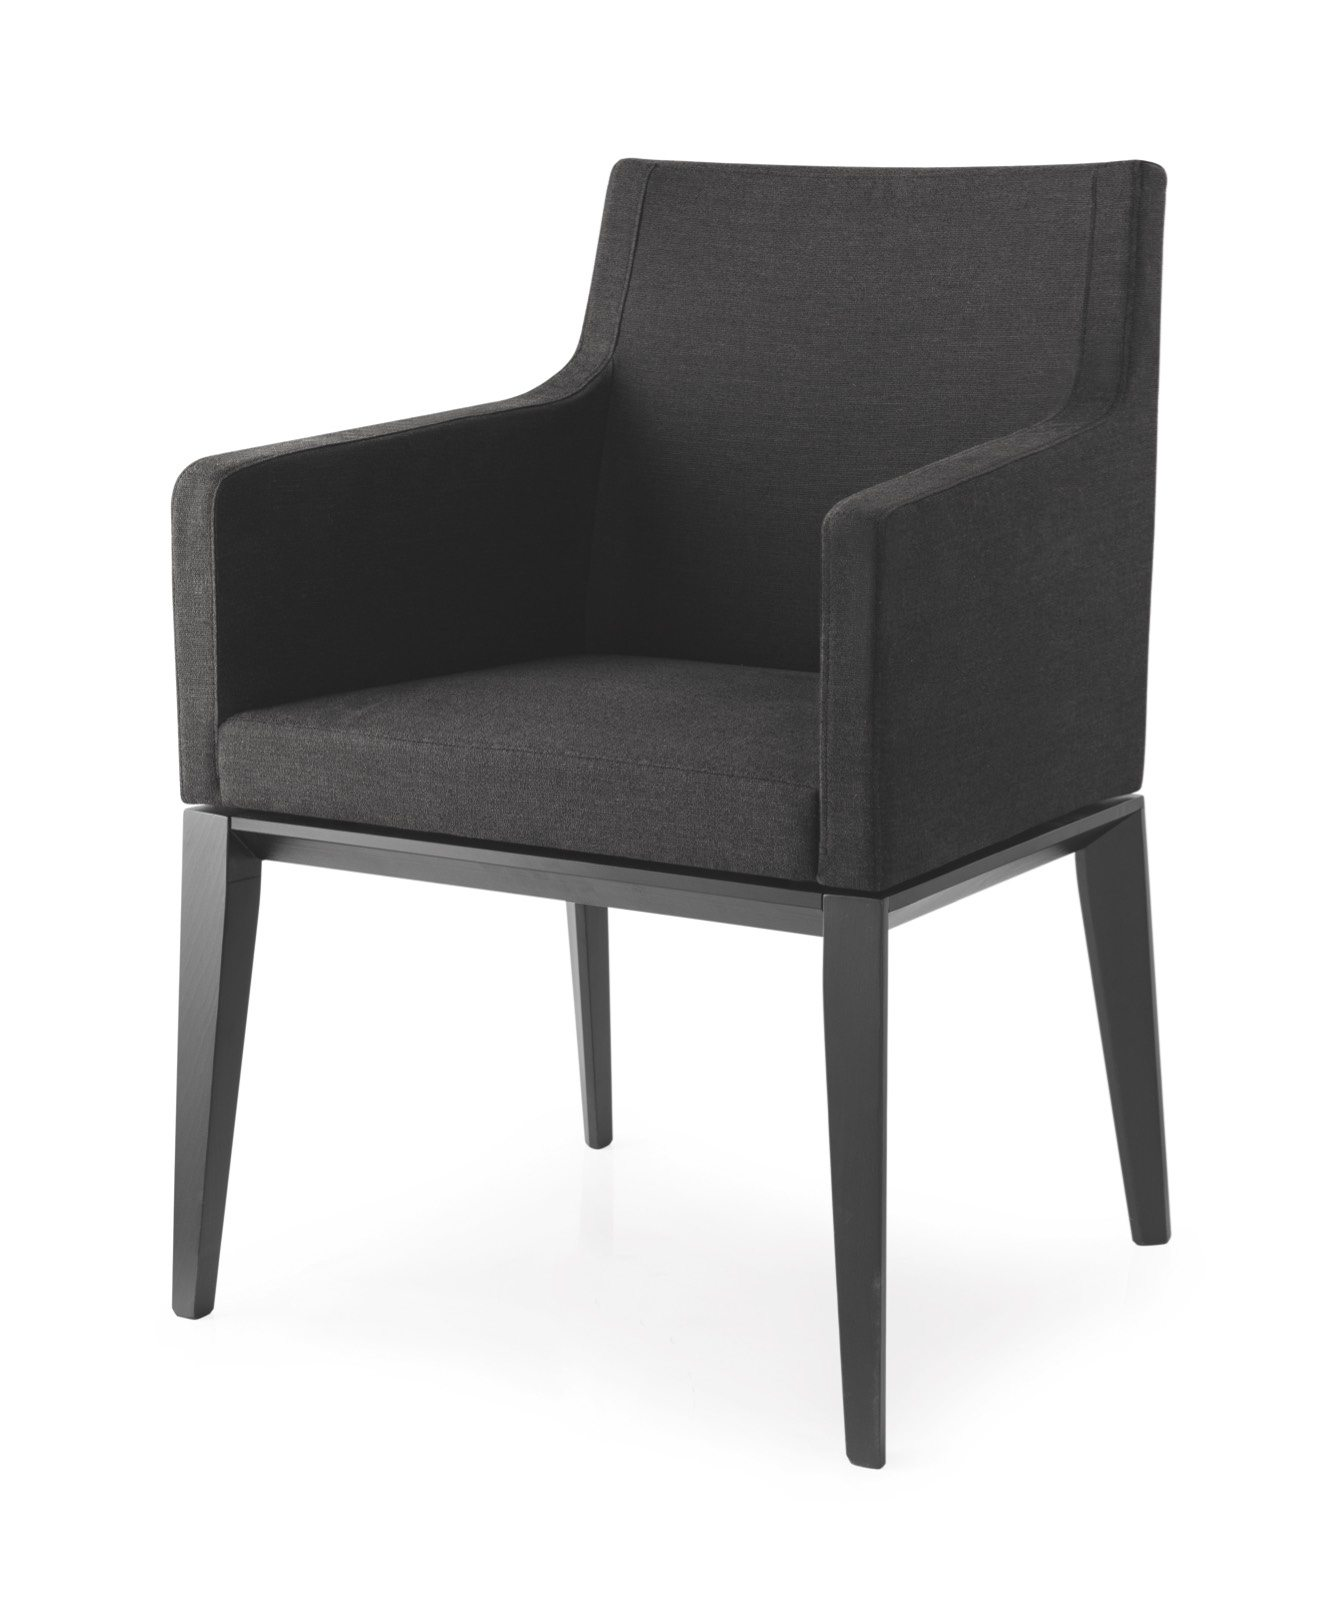 Bess Low Back Arm Chair LaDiff : BessArmchaircs1473P132A08 from ladiff.com size 1323 x 1601 jpeg 128kB